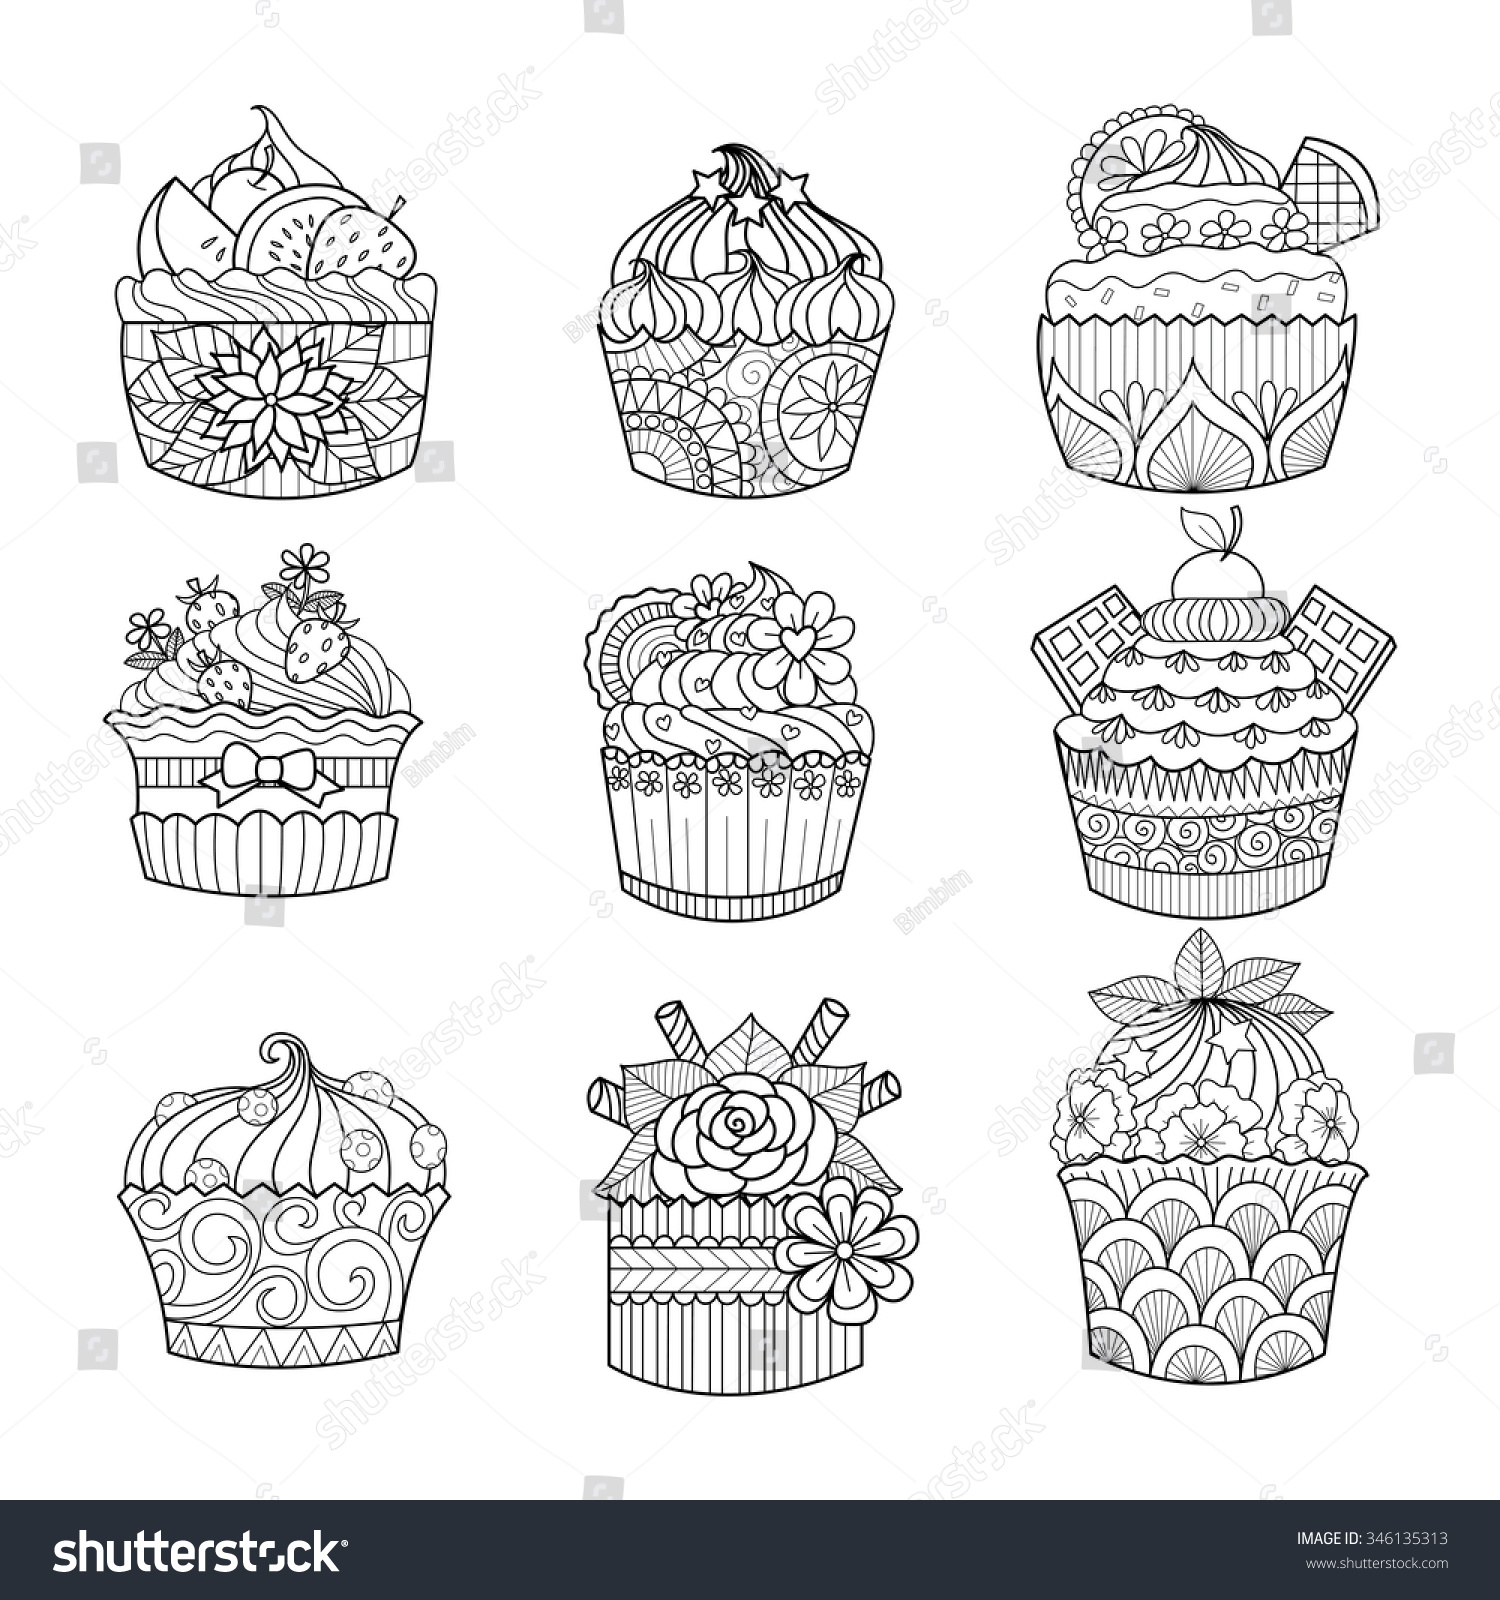 Hand Drawn Cupcake Coloring Book Adult Stock Vector 346135313